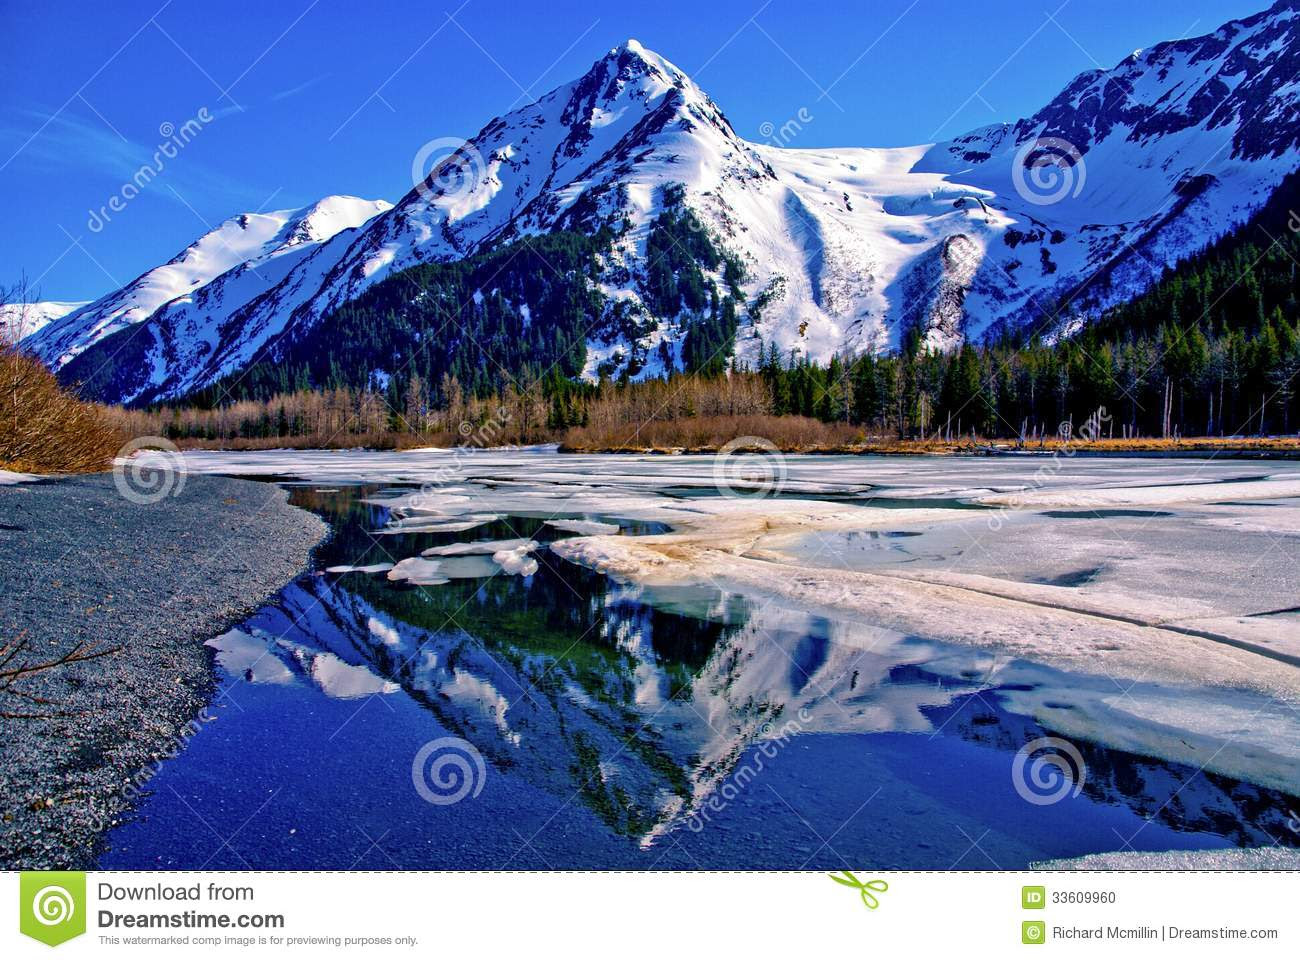 the Partially Frozen Waters of a Lake in the Great Alaskan Wilderness